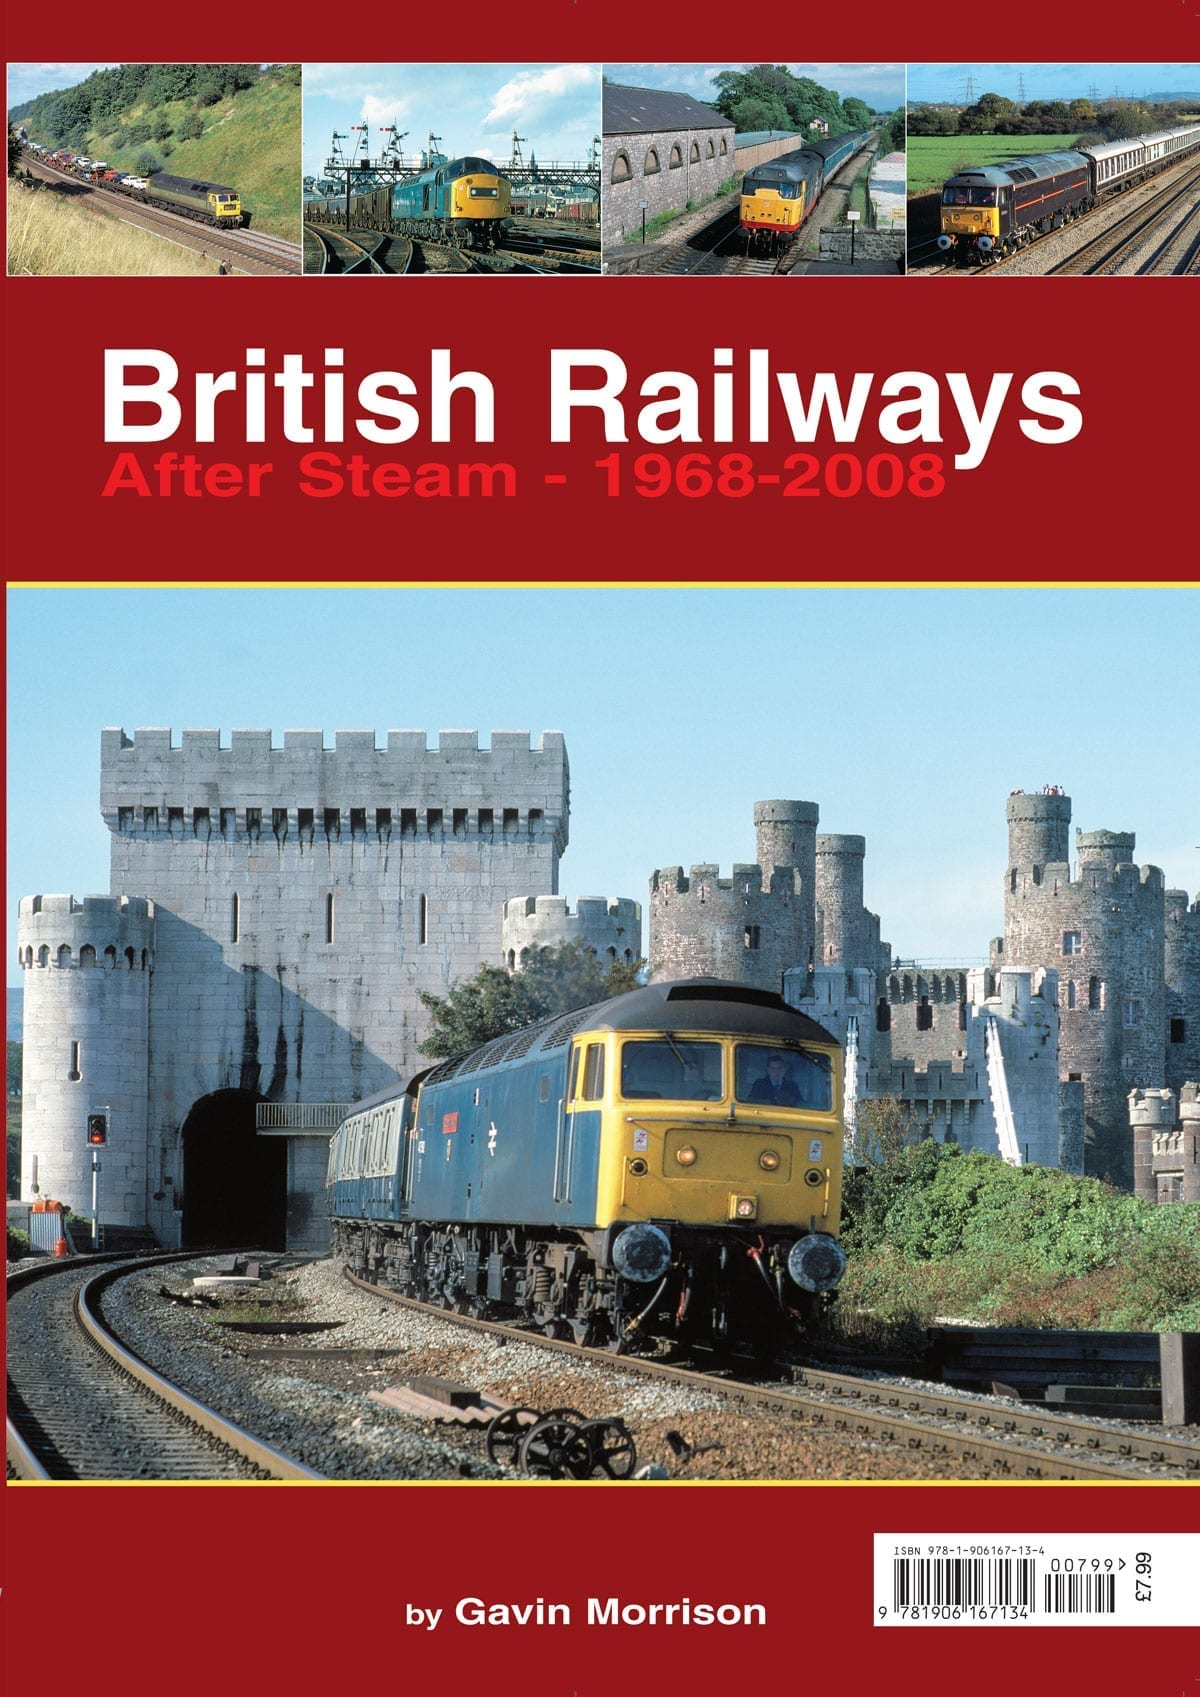 British Railways After Steam – 1968-2008